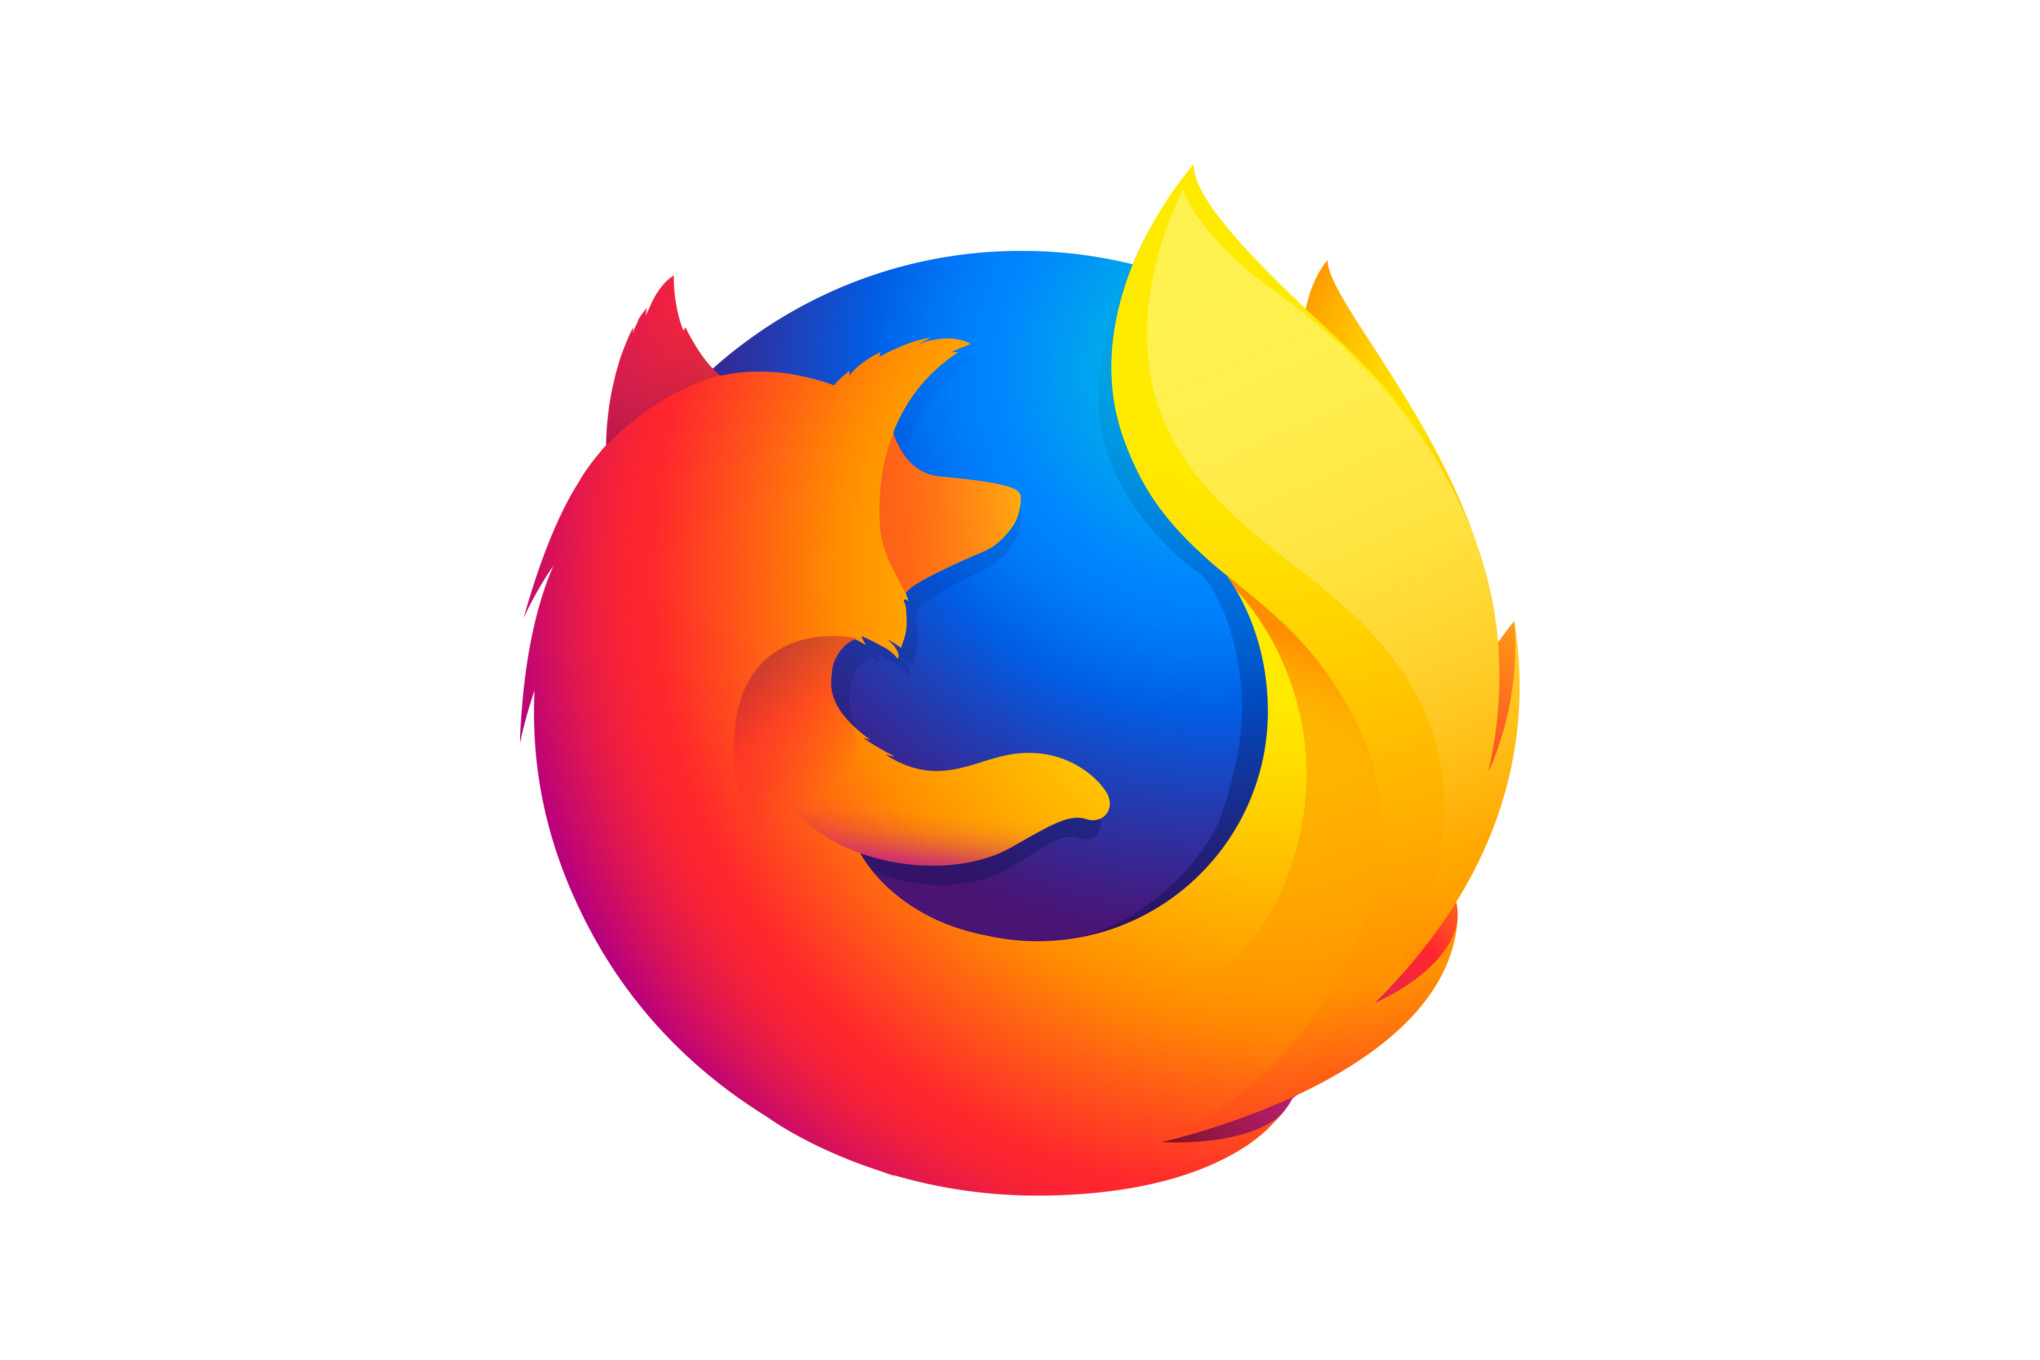 It's time to give Firefox a fresh chance